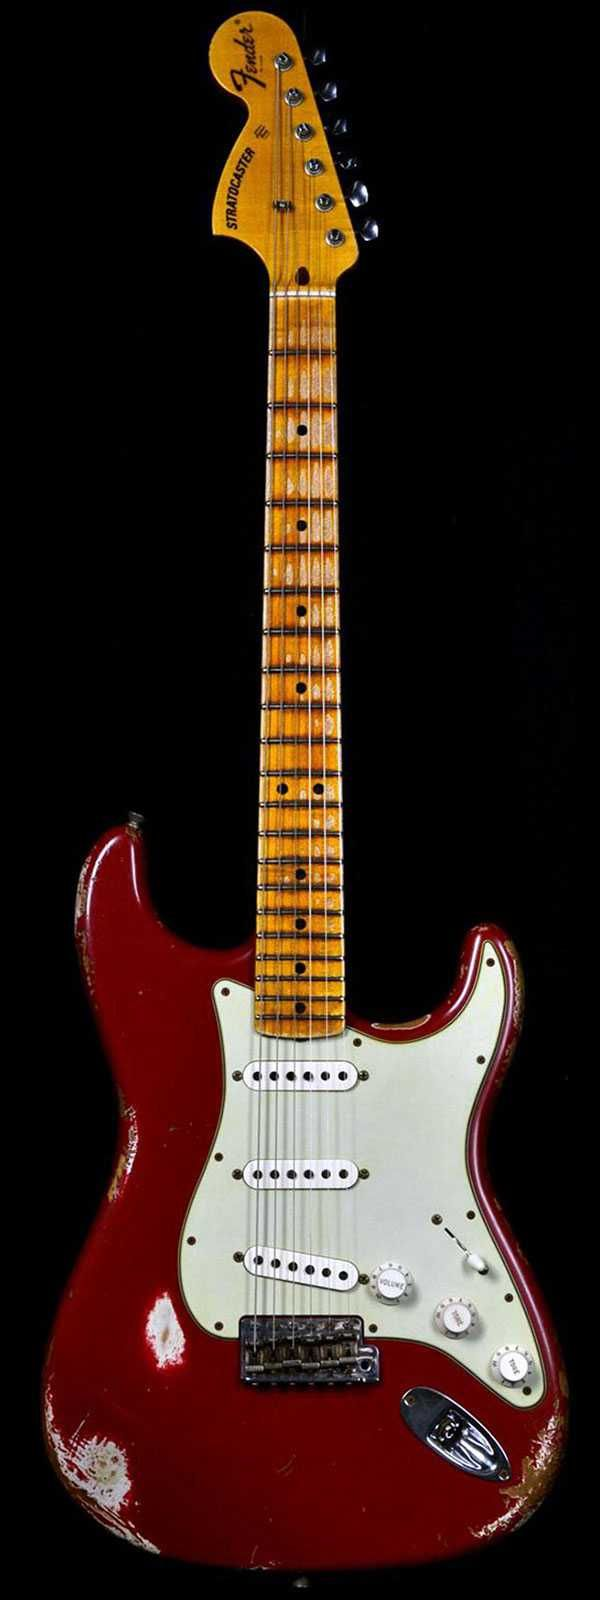 Fender 1969 Heavy Relic Stratocaster Faded Dakota Red with Reverse Headstock #fenderguitars